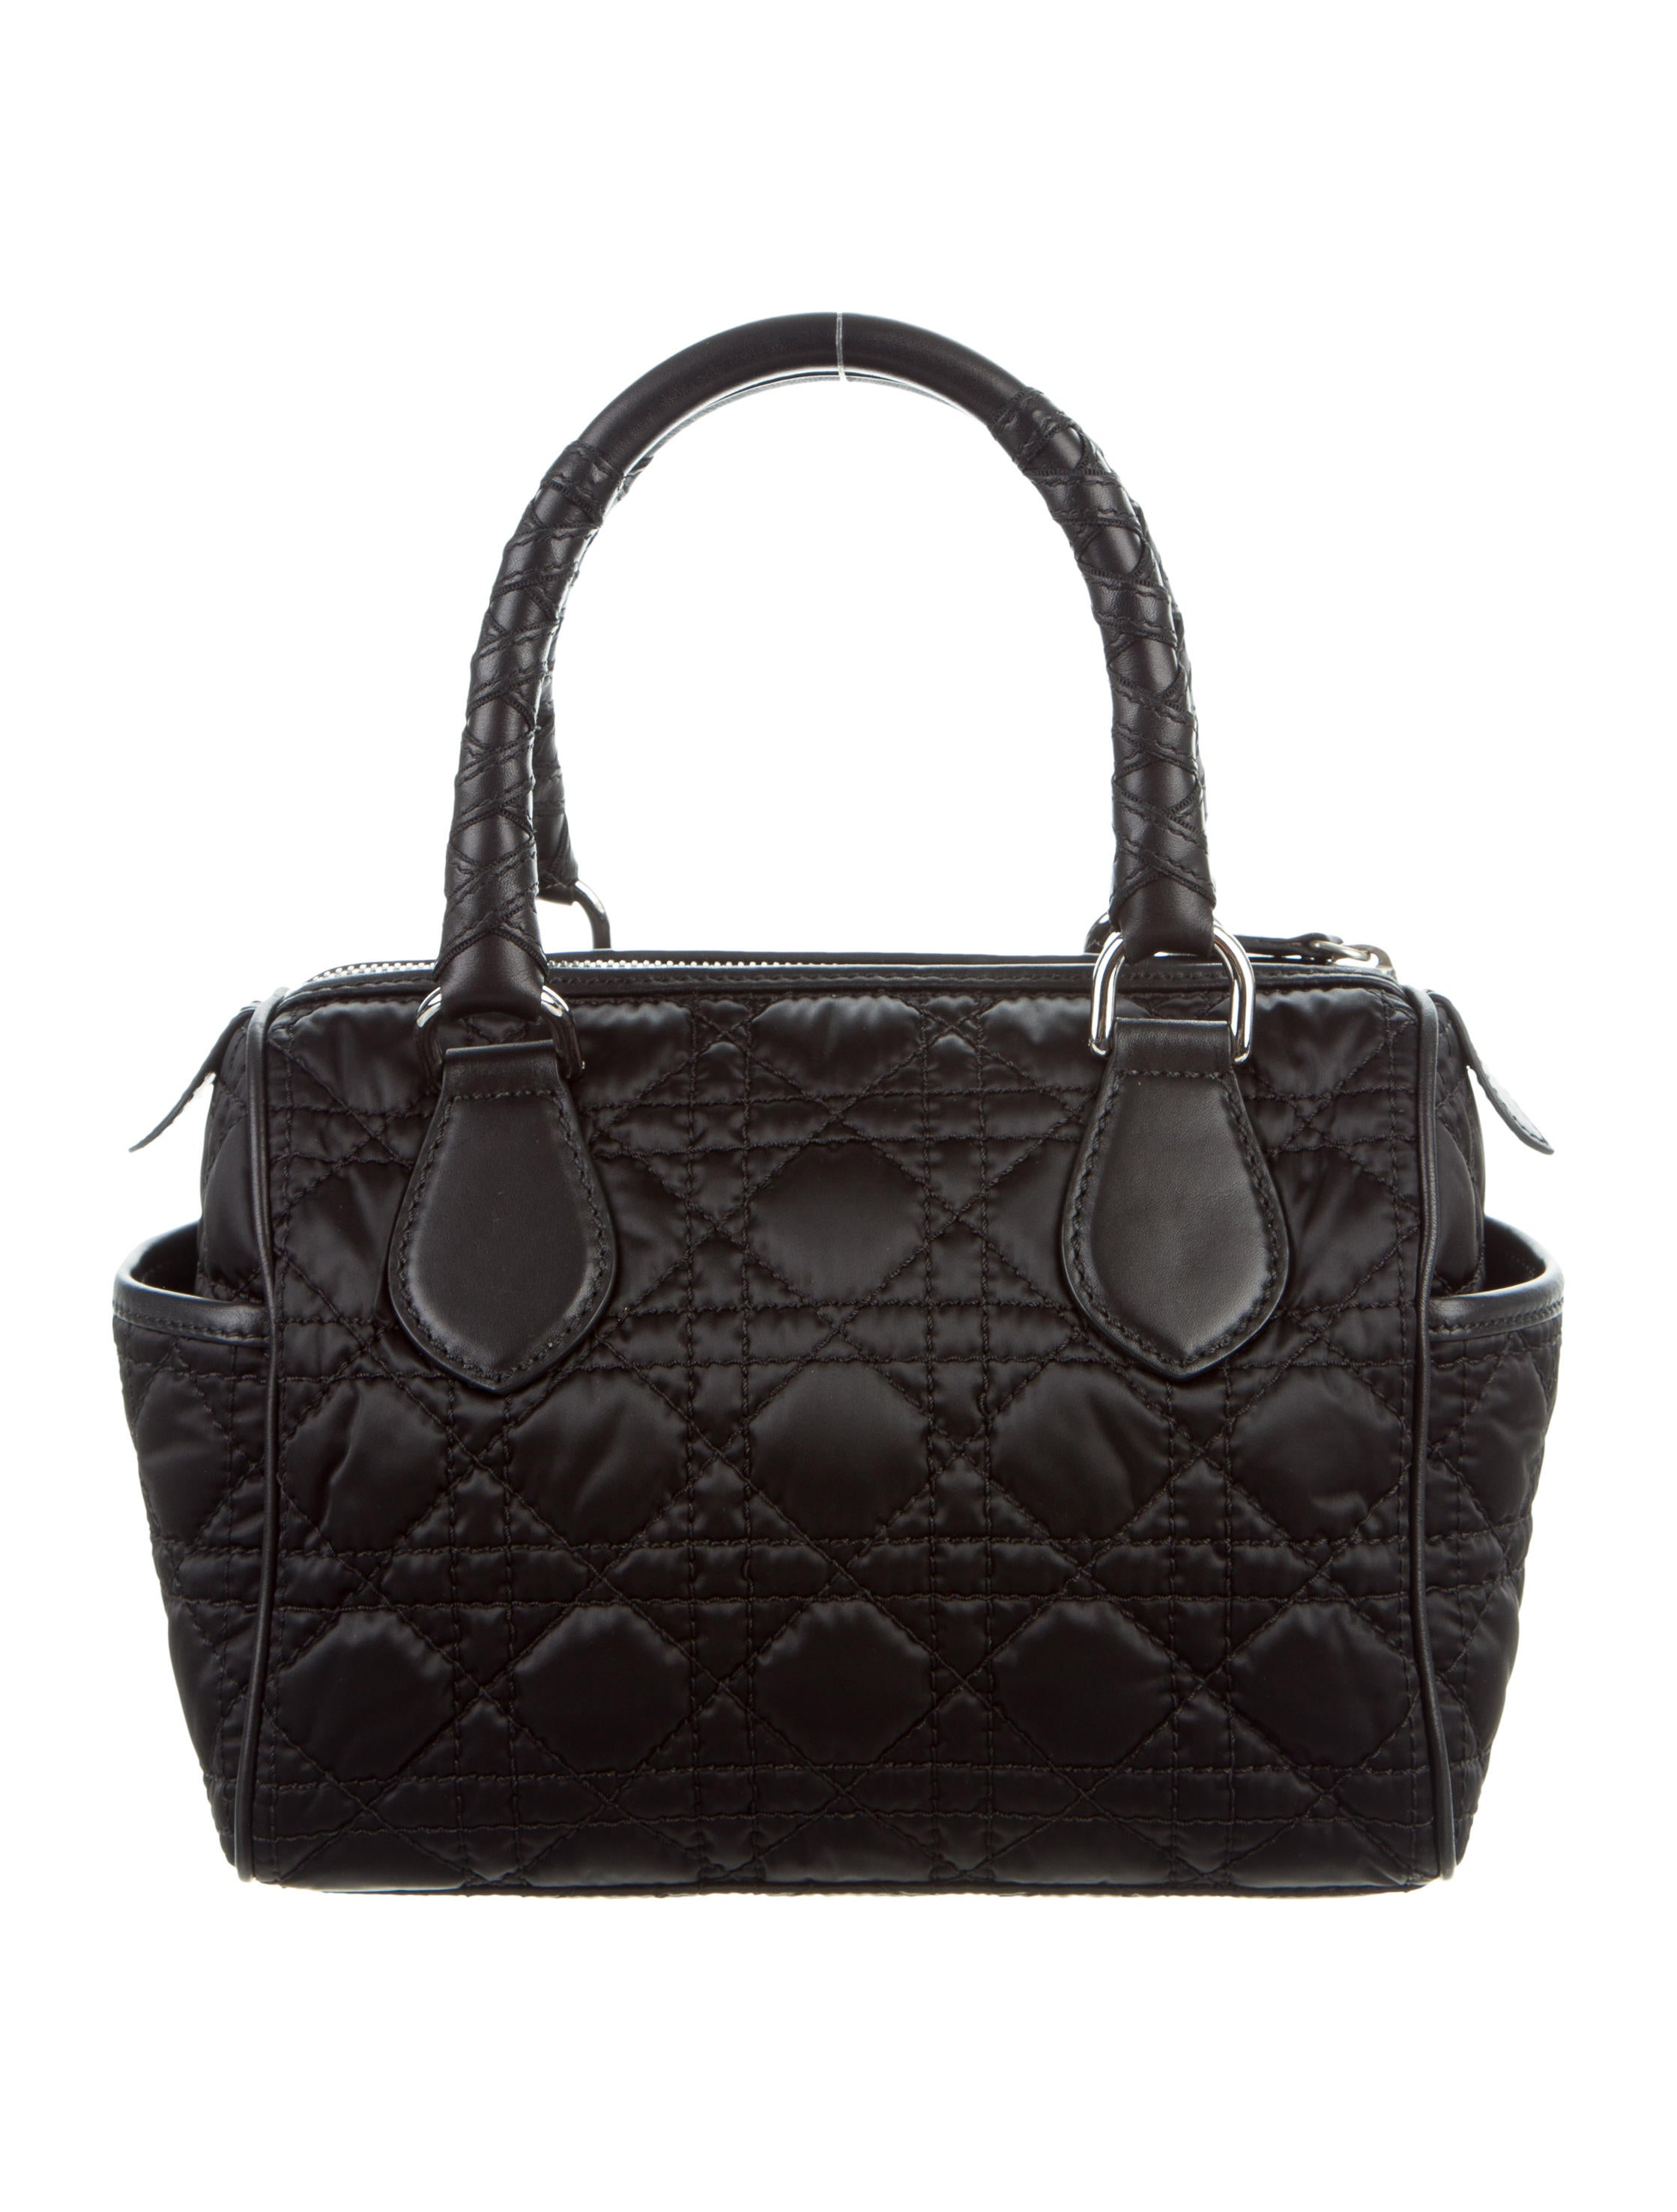 Christian Dior Mini Boston Bag Handbags Chr57756 The